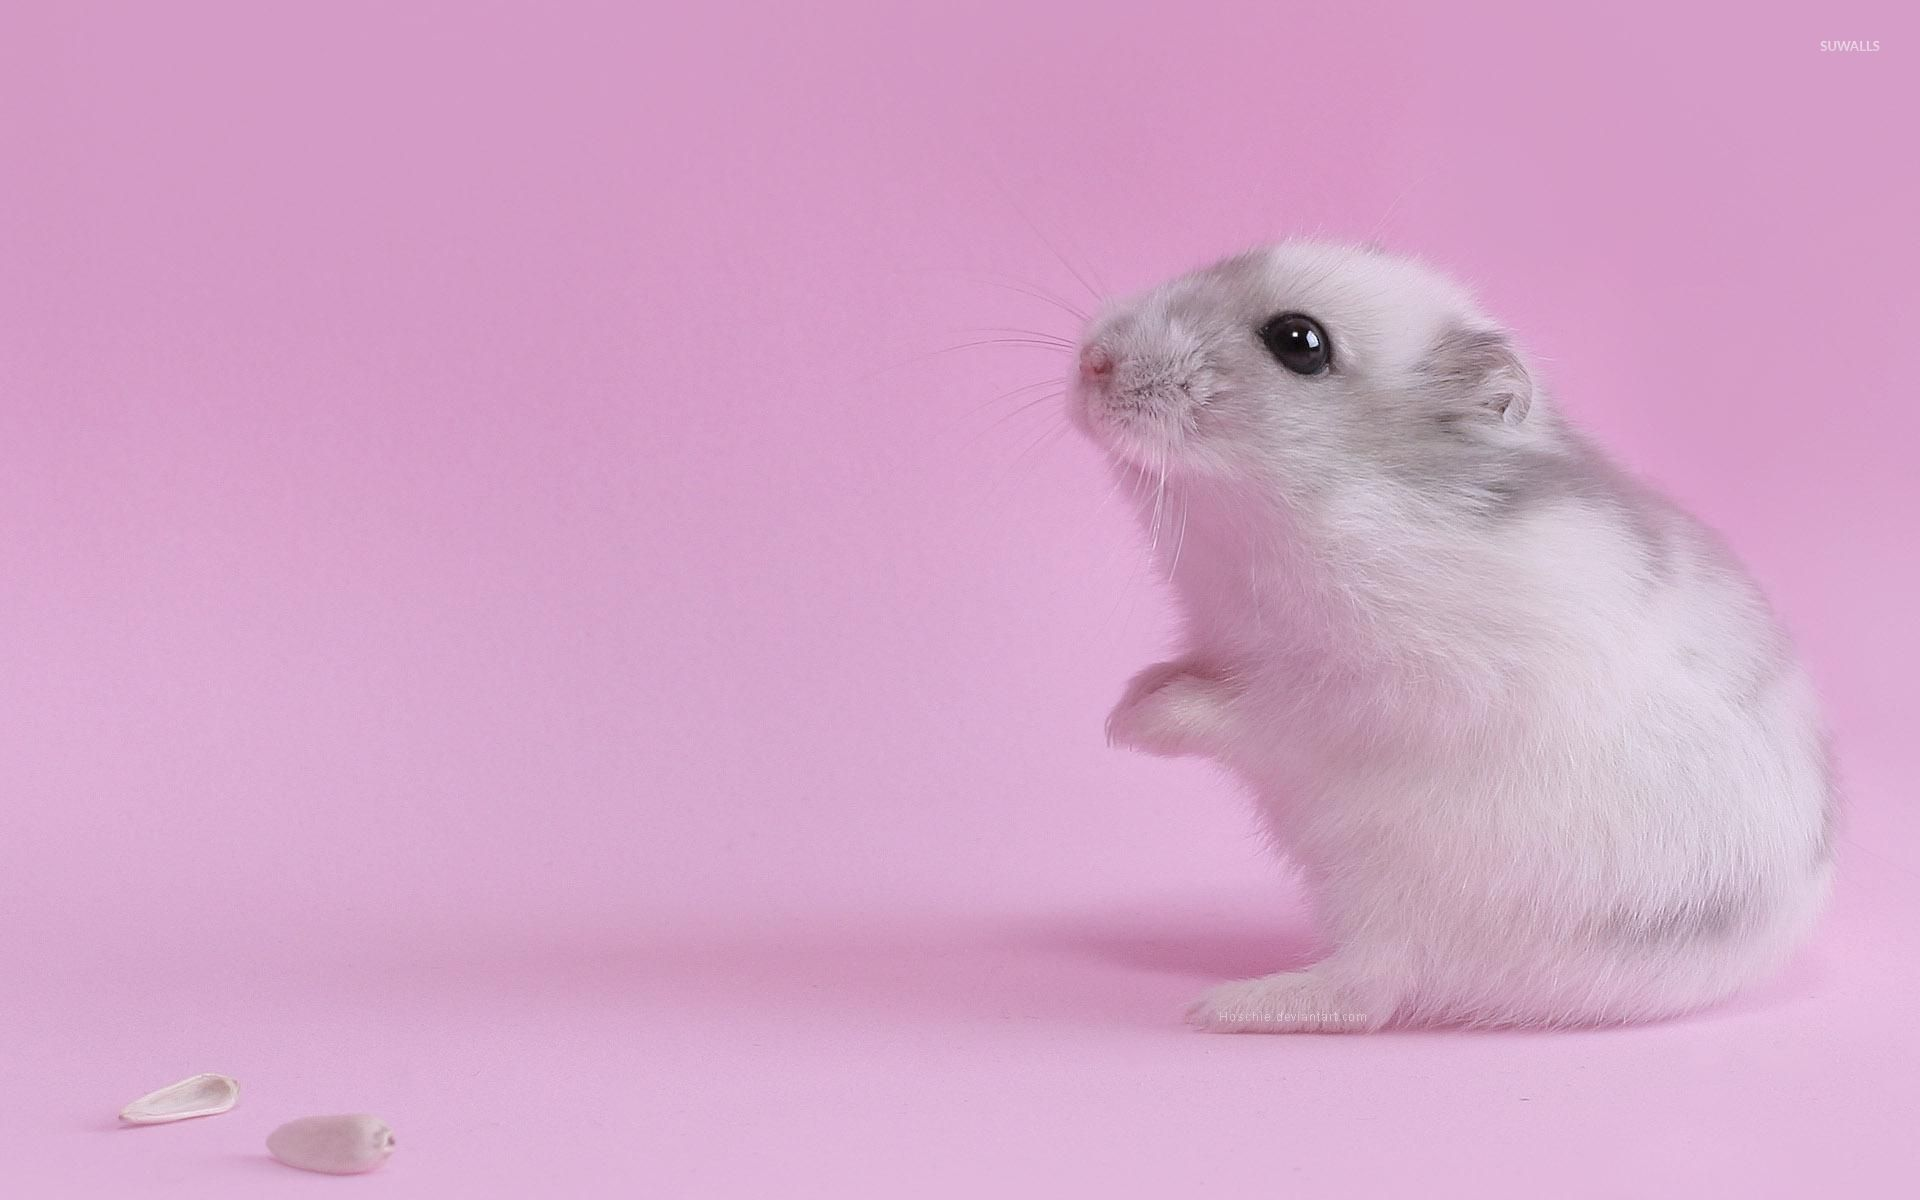 Cute Hamster Background Wallpaper 19999   Baltana 1920x1200